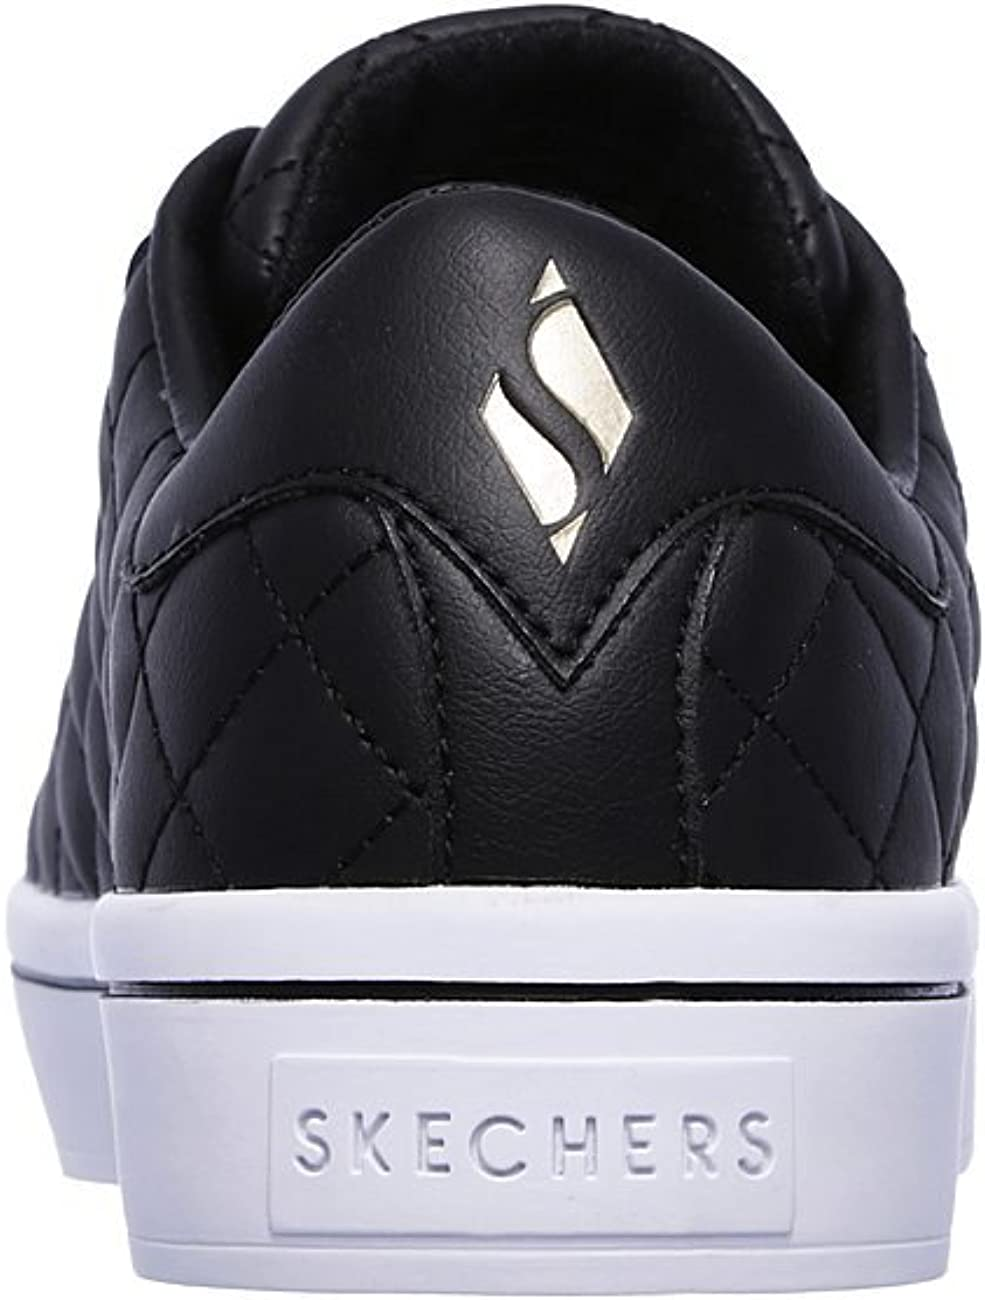 Skechers Street Womens Hi-lite-Quilted Fashion Sneaker